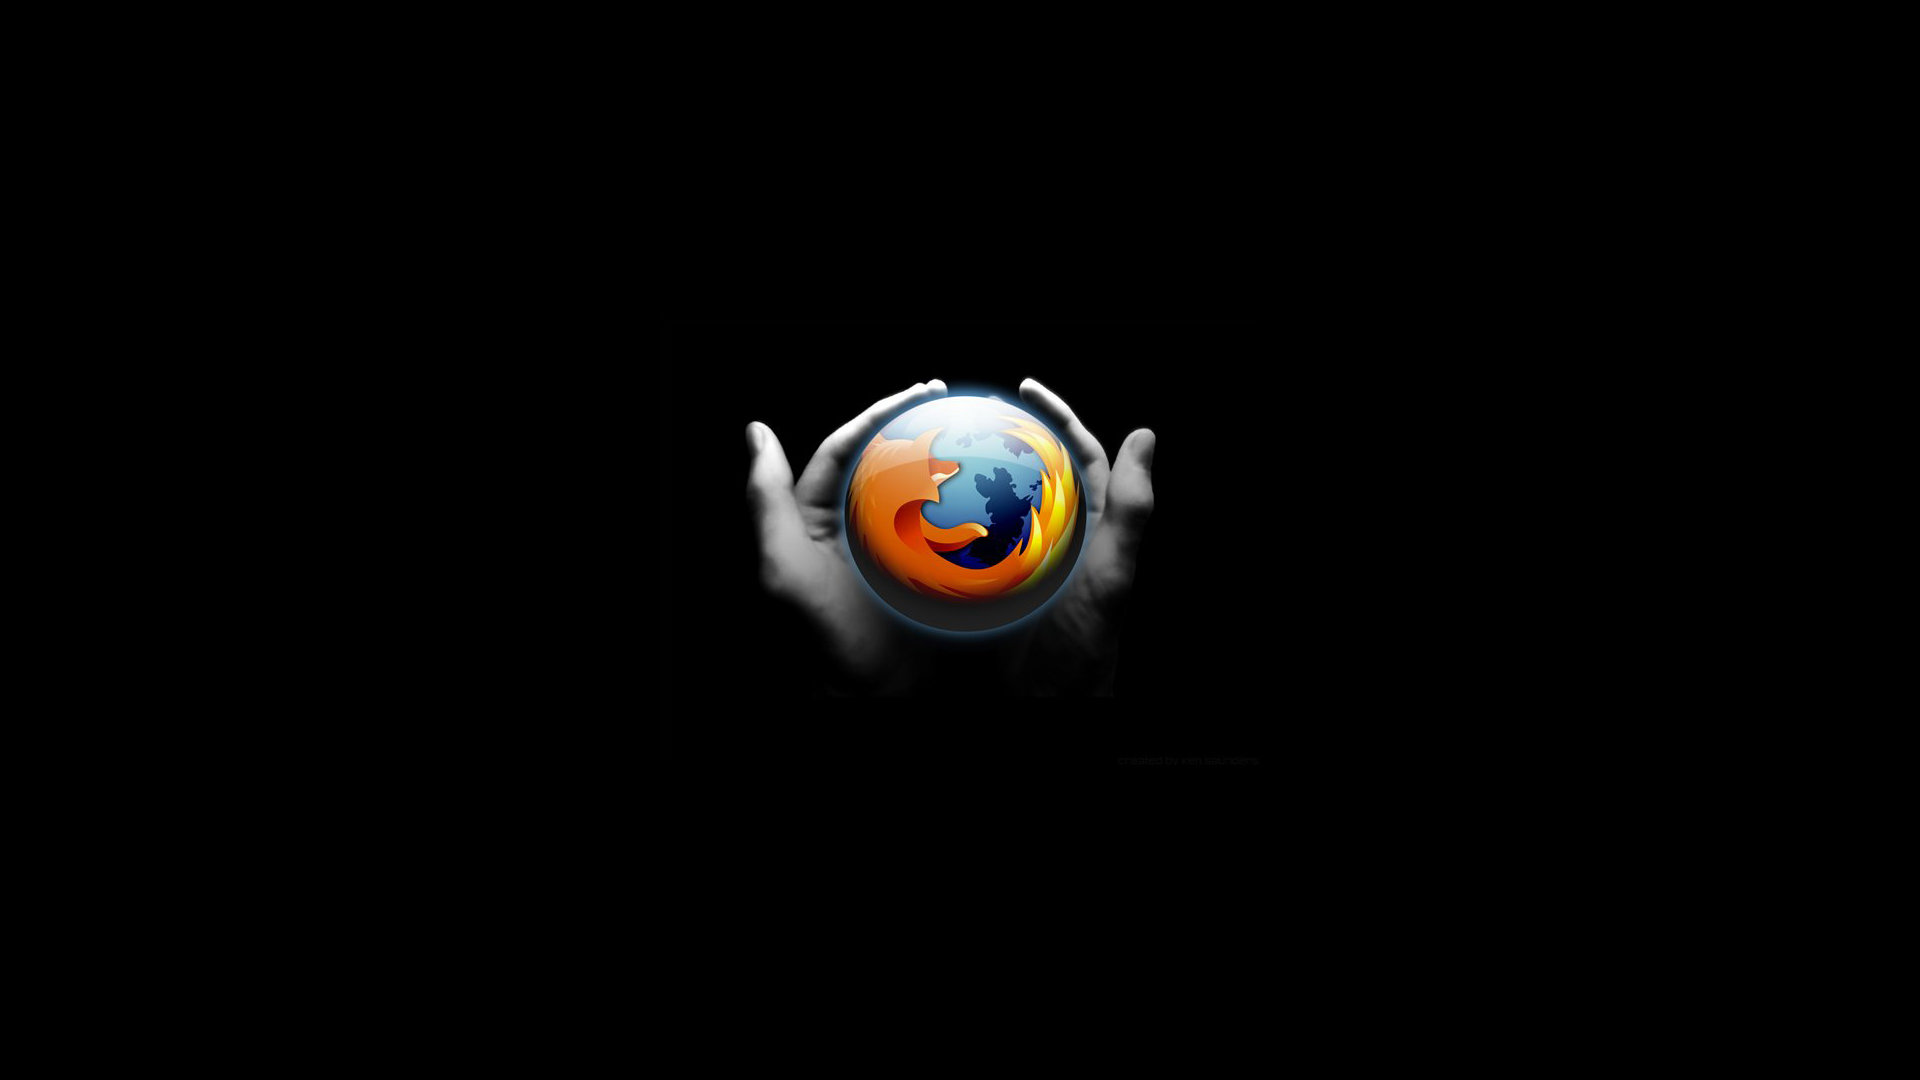 Free download Firefox background ID:498799 full hd 1920x1080 for desktop